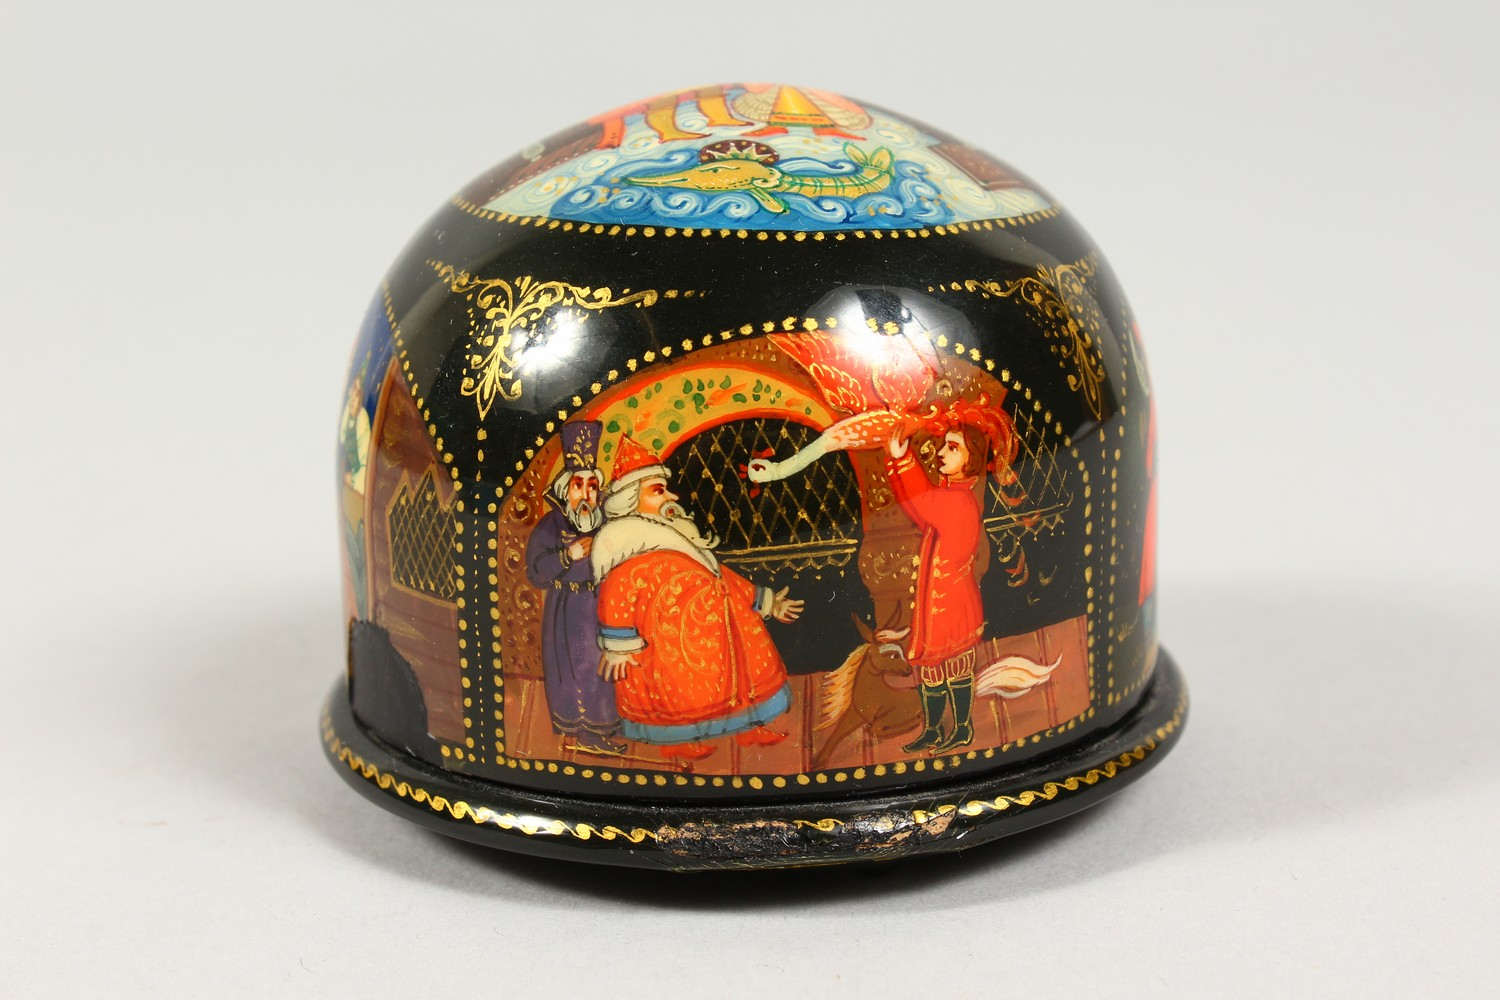 TWO SMALL RUSSIAN CIRCULAR BLACK PAPIER MACHE BOXES AND COVERS. 2.5ins diameter. - Image 7 of 12